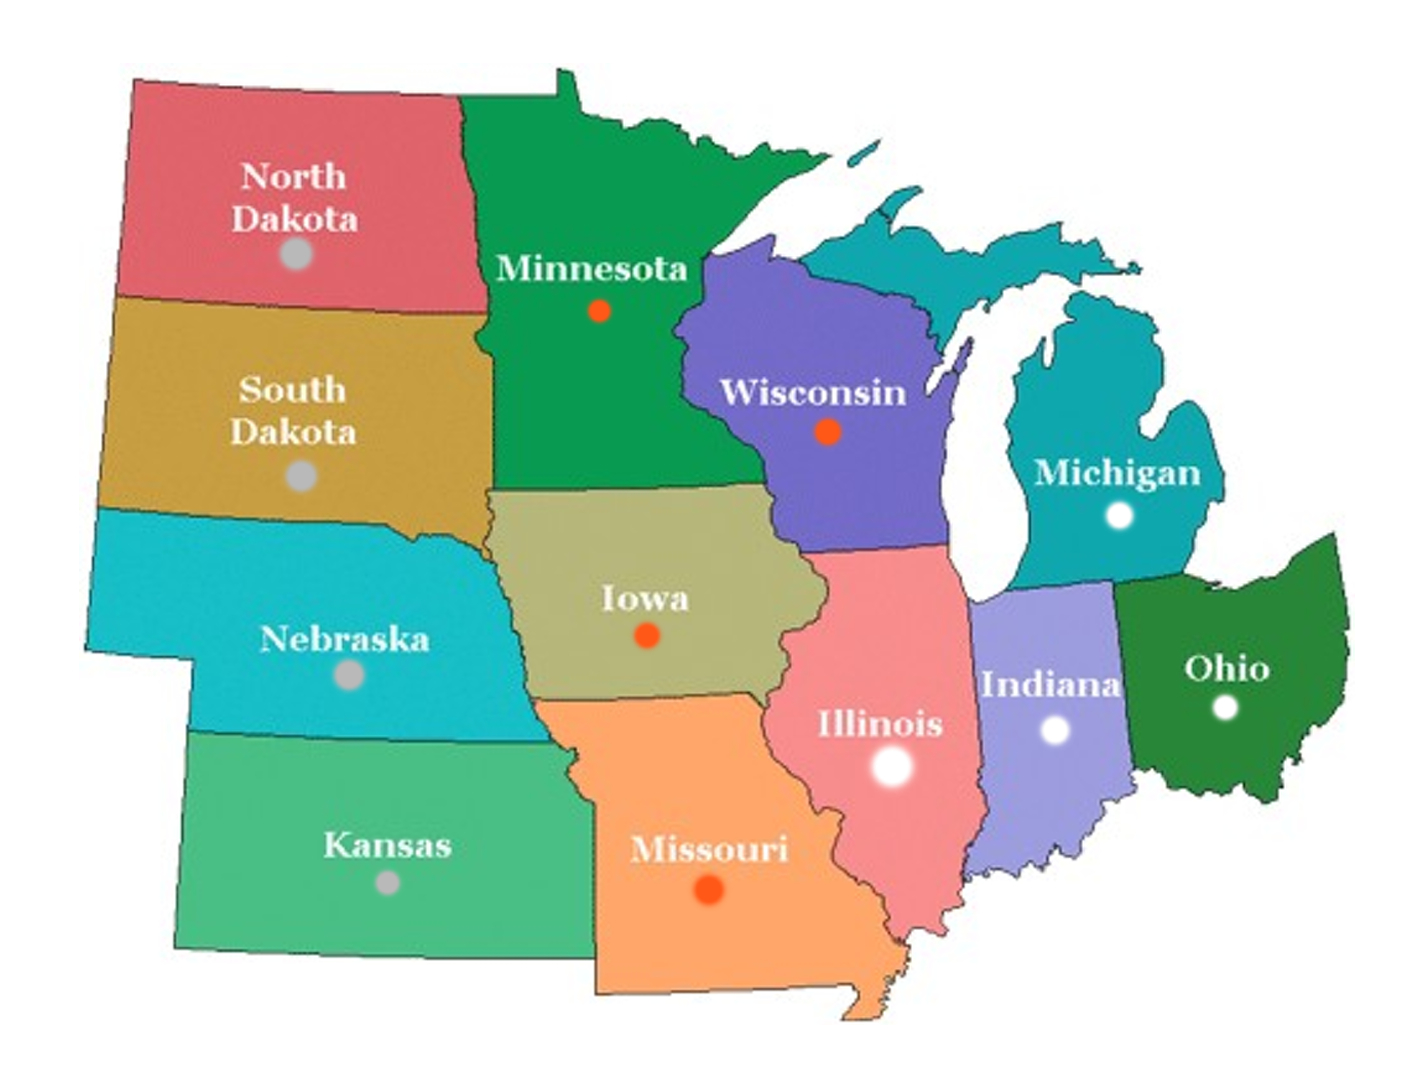 Ways To Map The Midwest Maps Products By Region - Us zip code regions